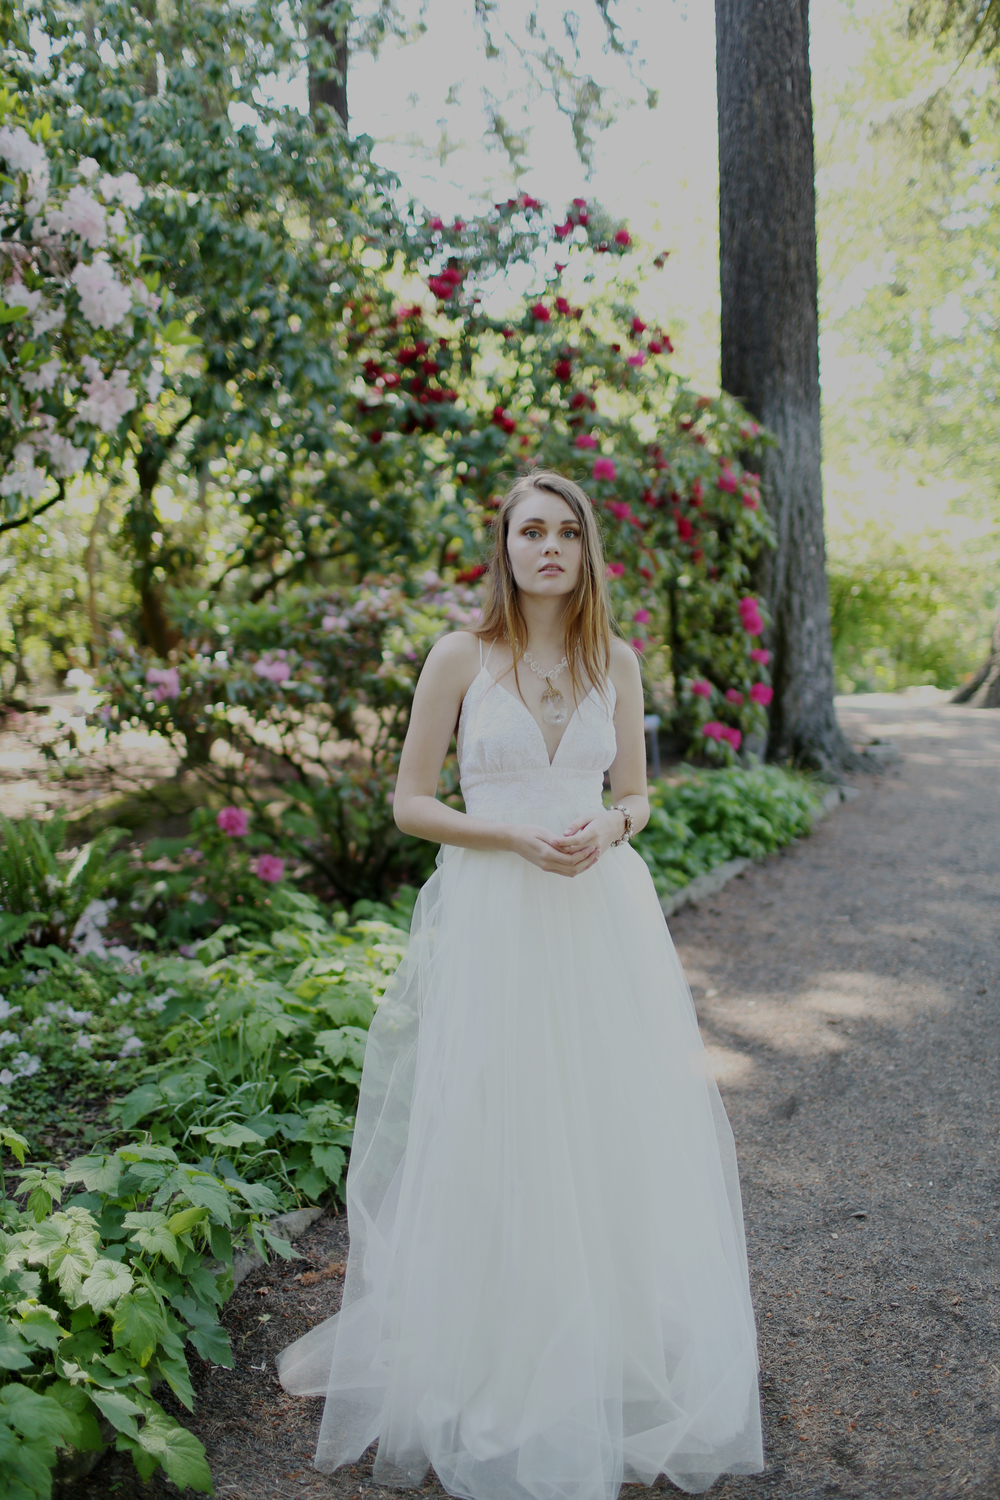 Wedding Dresses Under $100 In  : Aliexpress buy romantic simple bohemian wedding